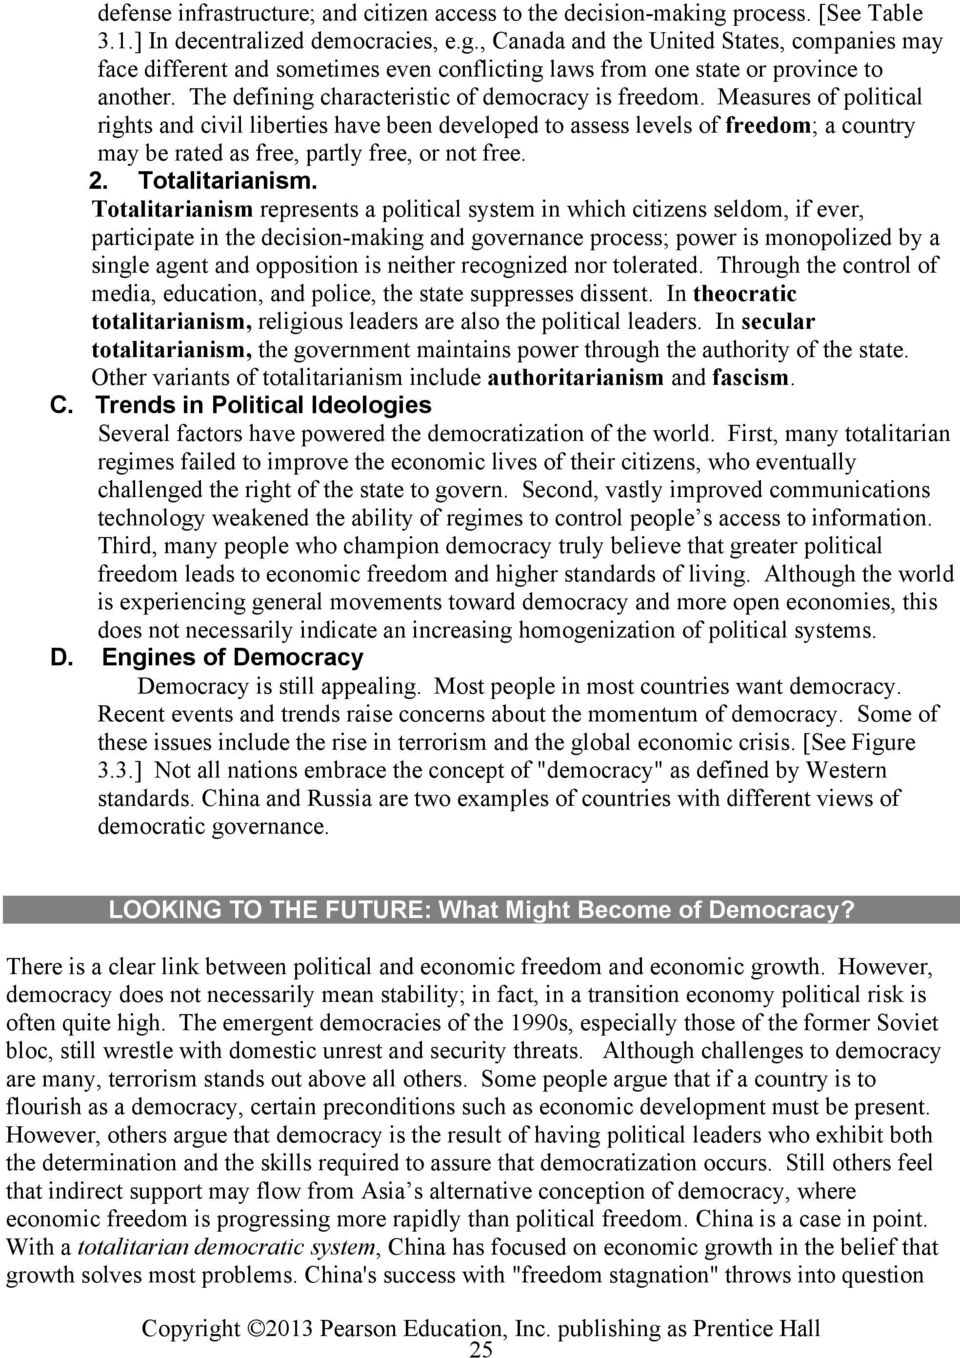 democracy and totalitarianism essay  democracy and totalitarianism essay